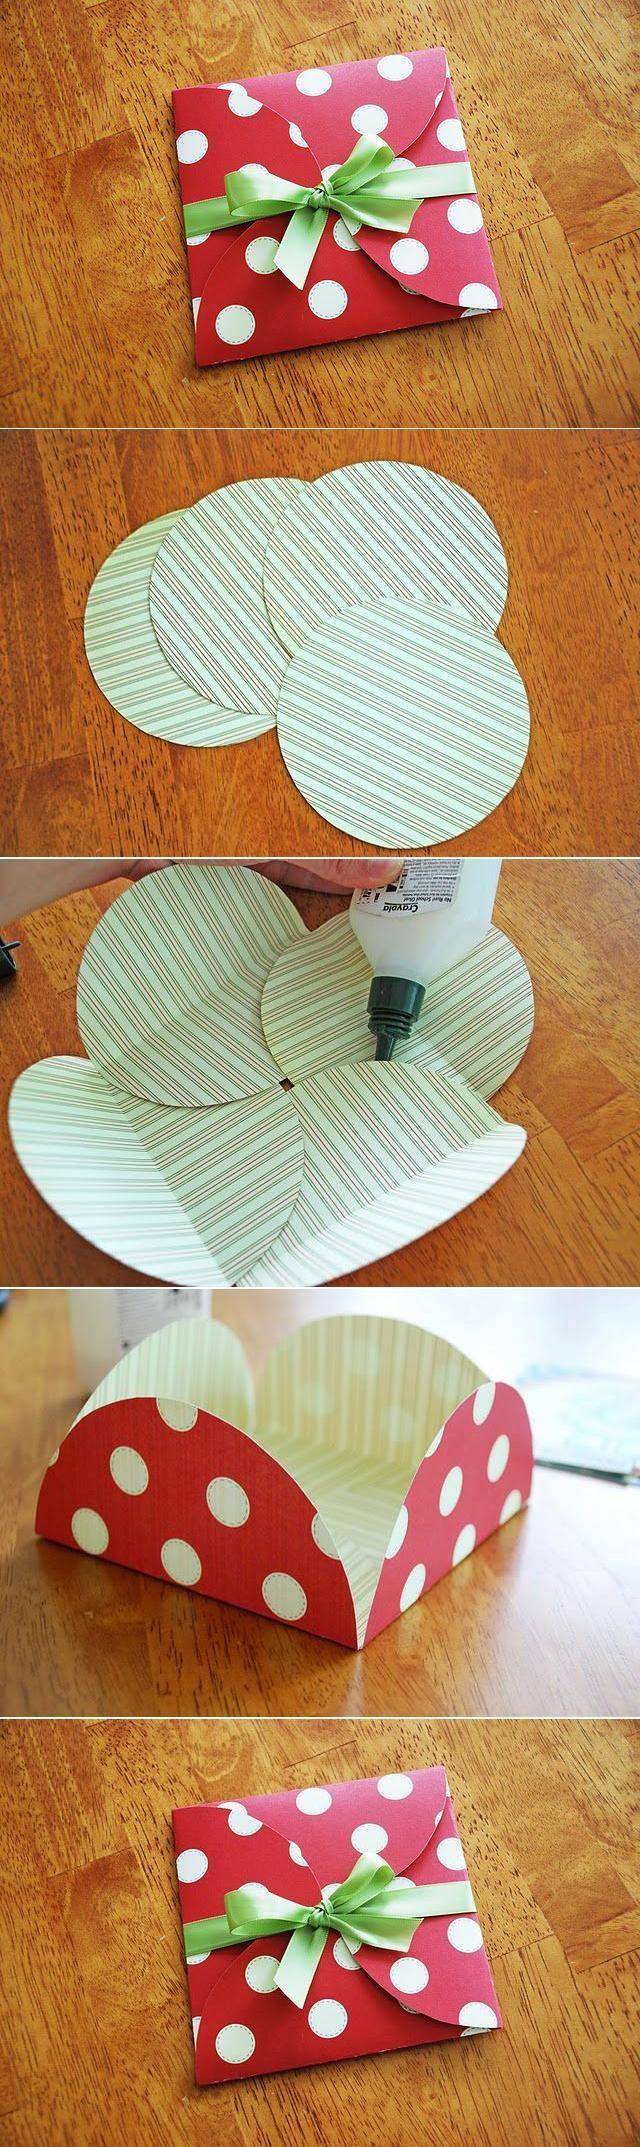 DIY petal fold envelope made out of four circles